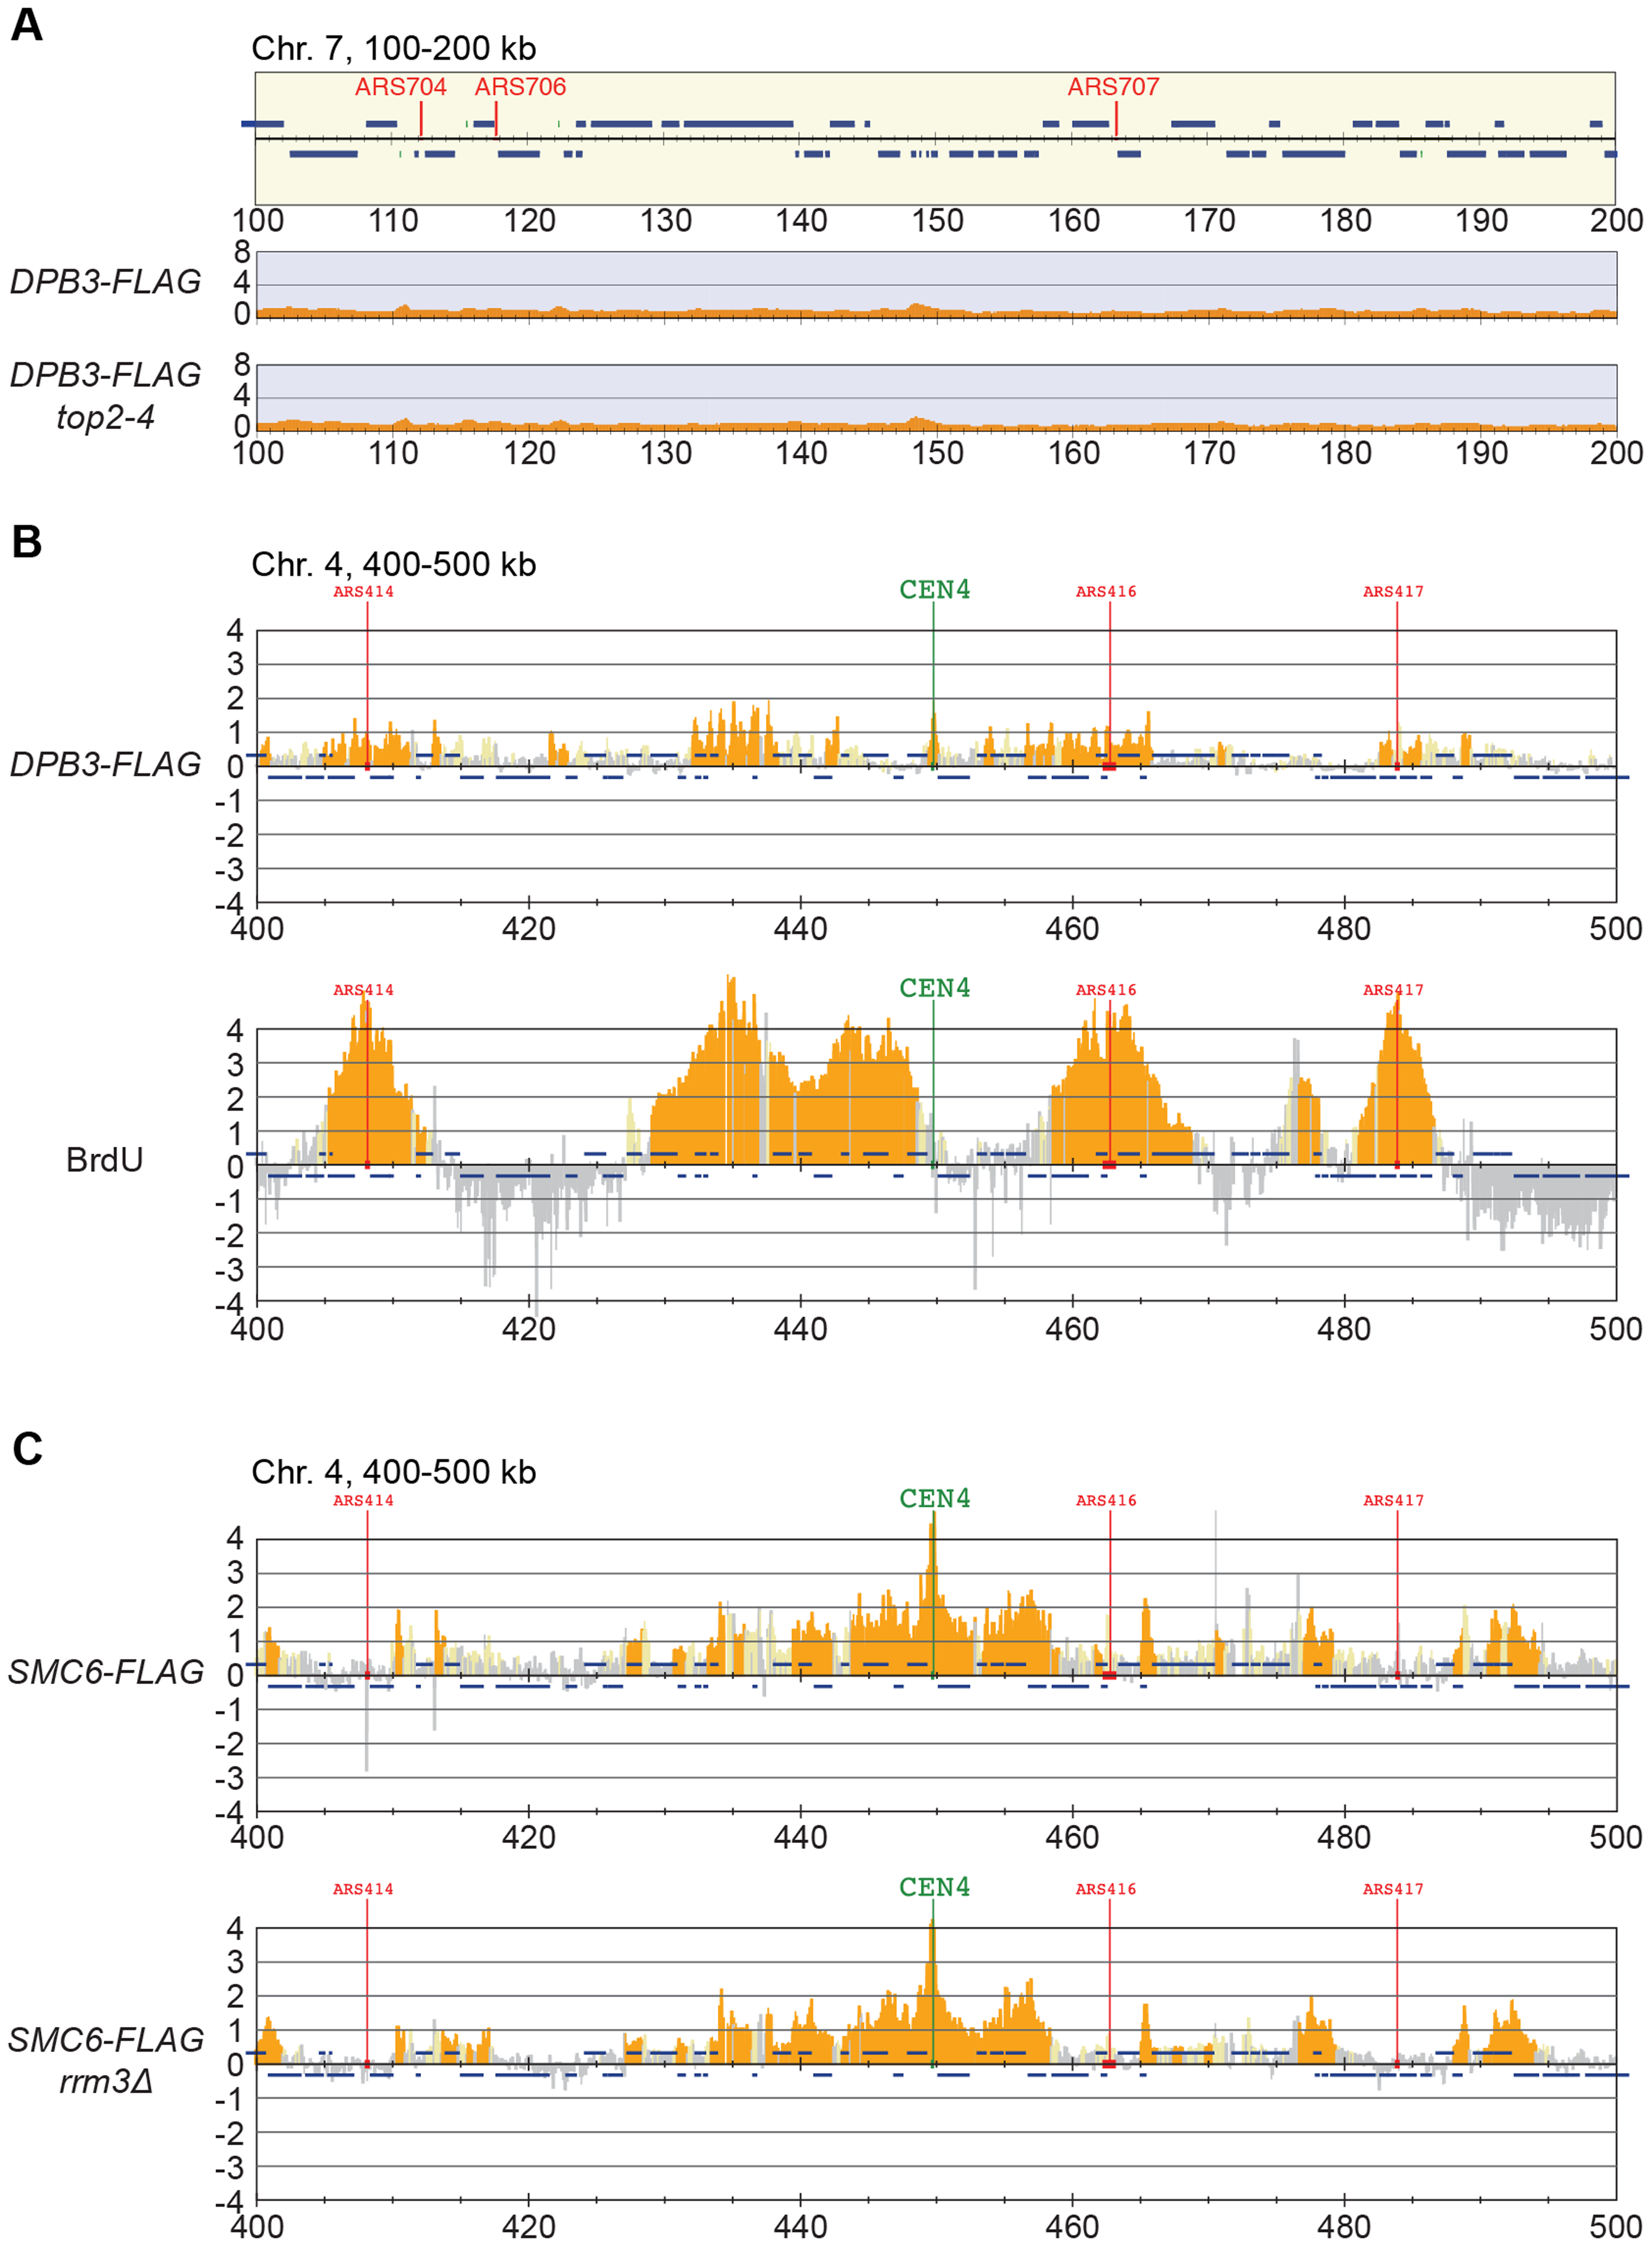 The chromosomal association of Smc6 does not depend on replication fork stalling.